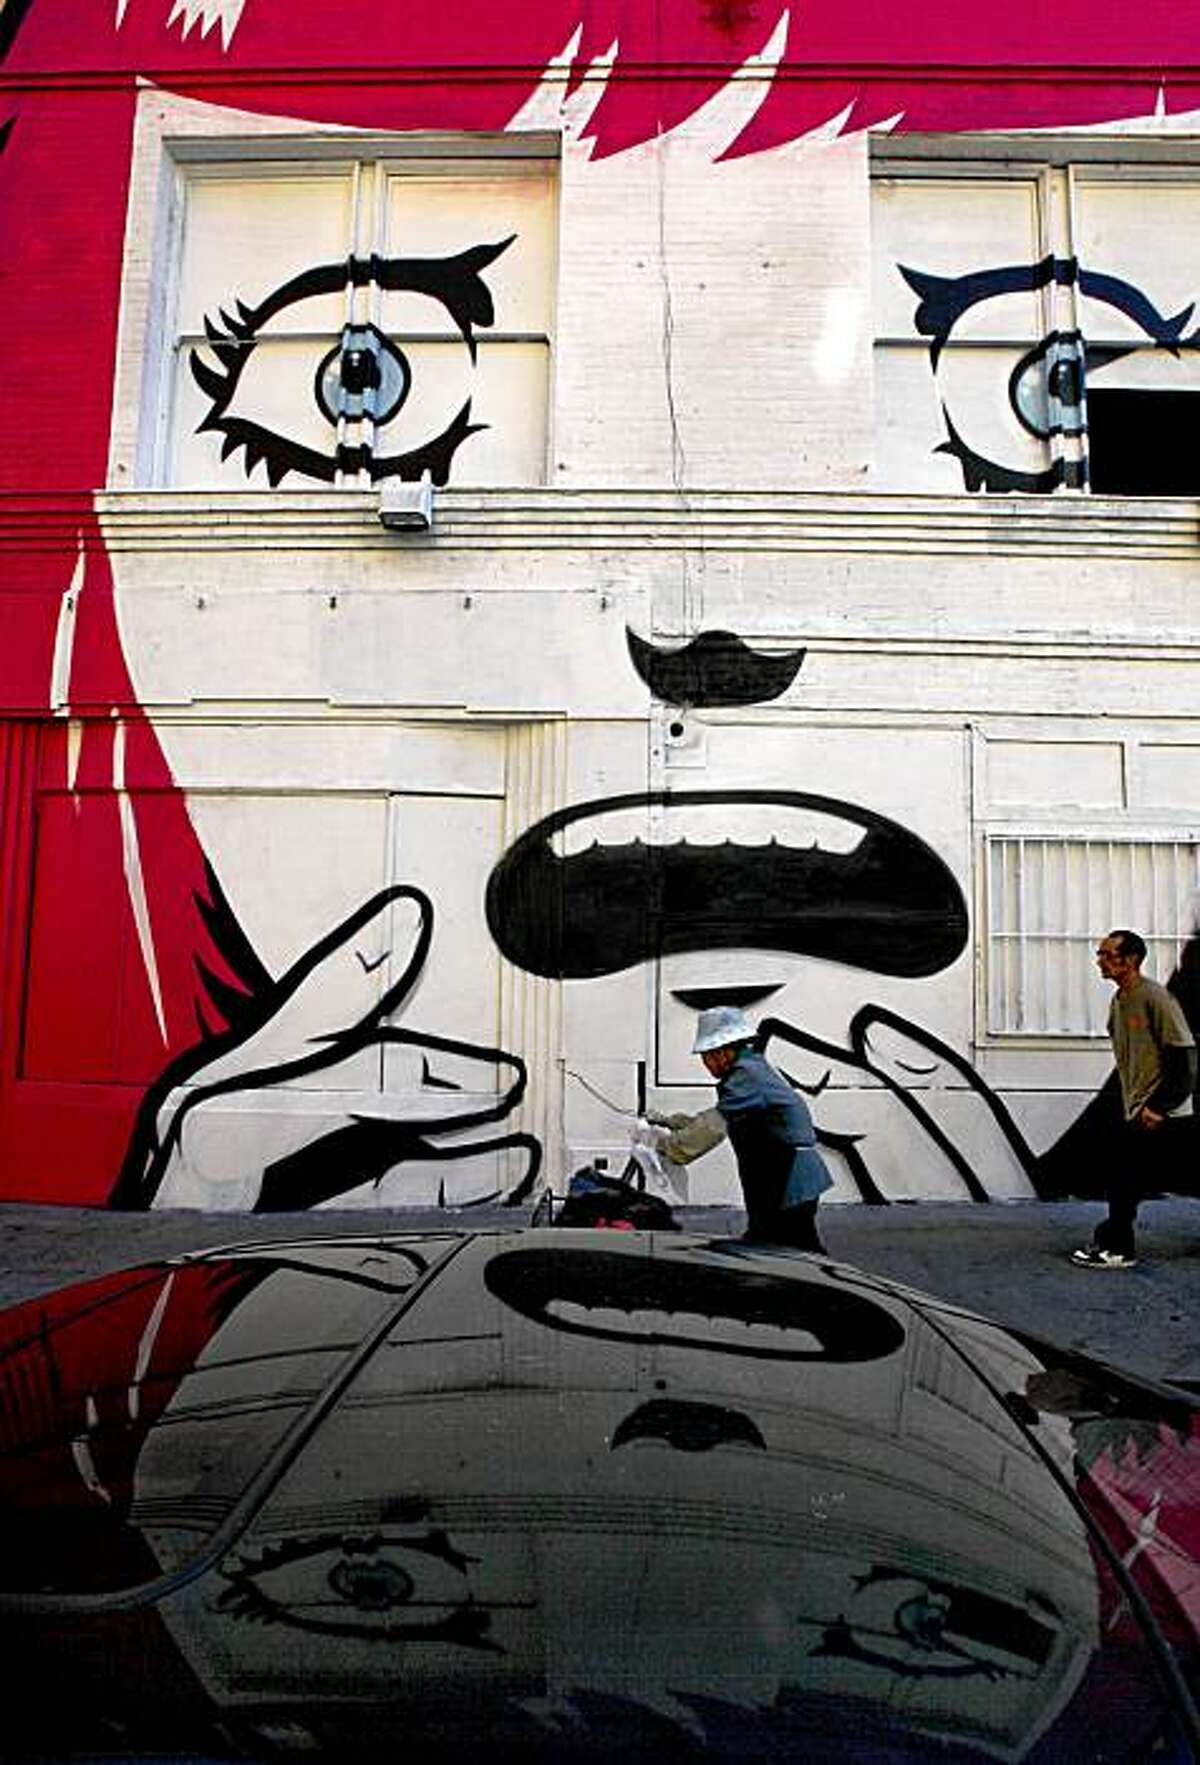 """""""Fear Head"""" a mural by Roman Cesario and Mitsu Overstreet along Golden Gate Street between Mason and Jones, on Tuesday October 27, 2009. 74 artists collaborate to create, """"Wonderland"""", 16 projects that fill sidewalks, buildings and storefronts throughout the Tenderloin in San Francisco, Calif."""